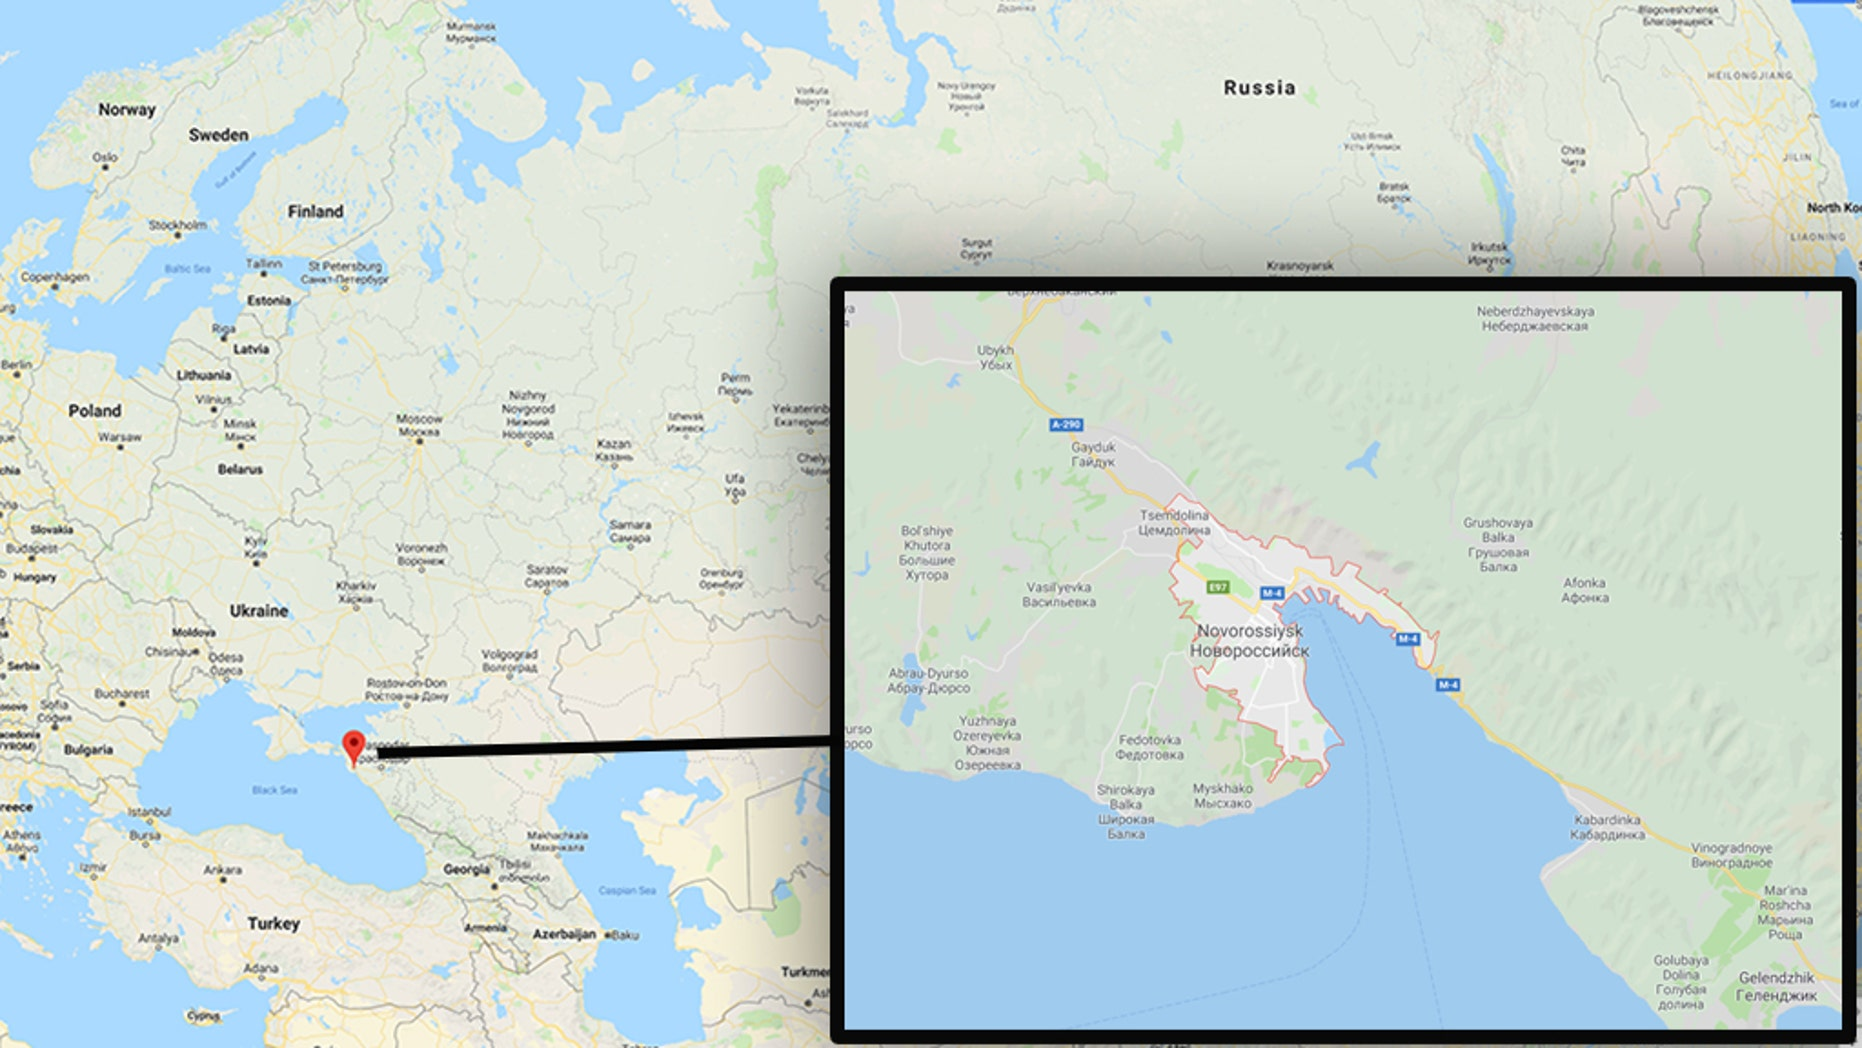 Two volunteers for the Church of Jesus Christ of Latter-day Saints were detained inNovorossiyk, Russia, church officials said.